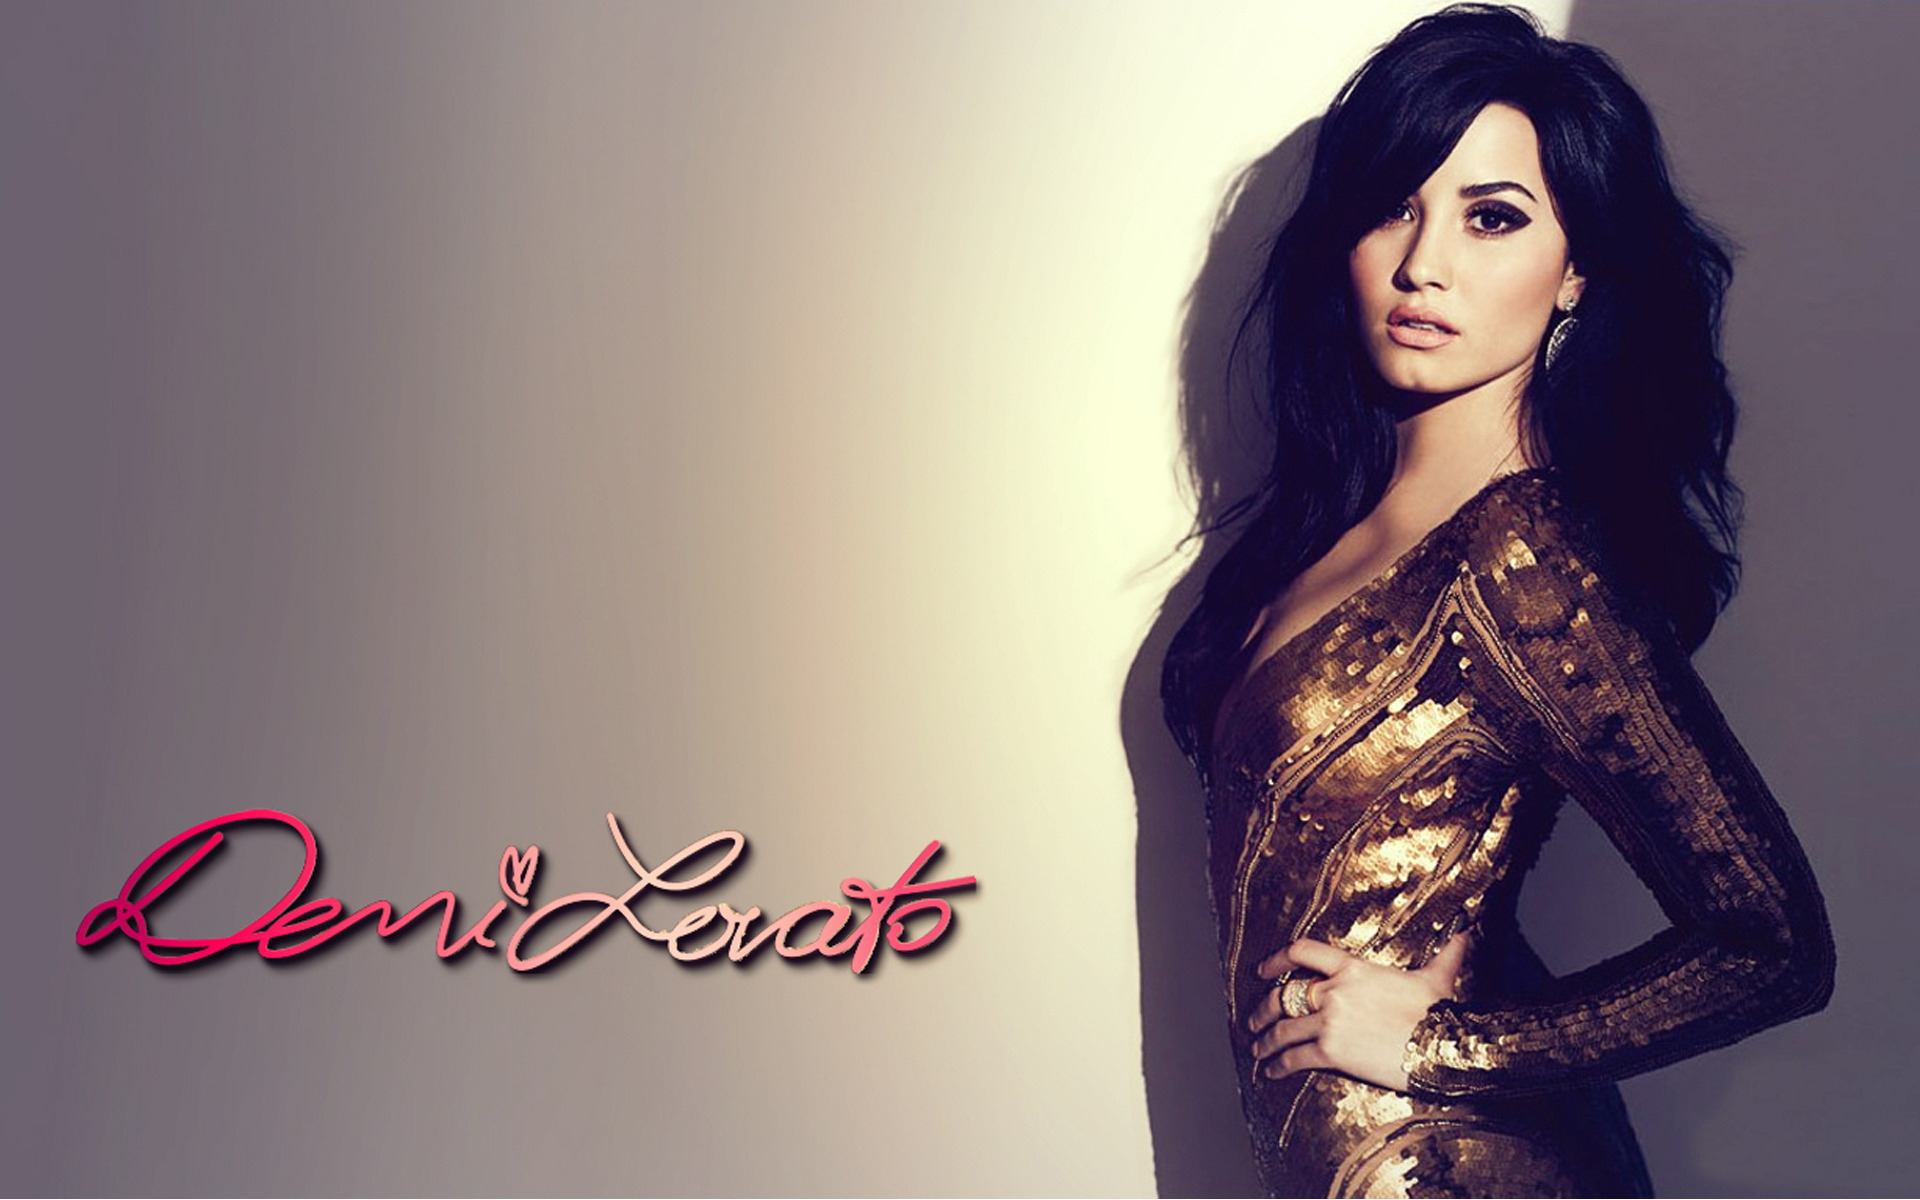 Demi Lovato Backgrounds   Wallpaper High Definition High Quality 1920x1200